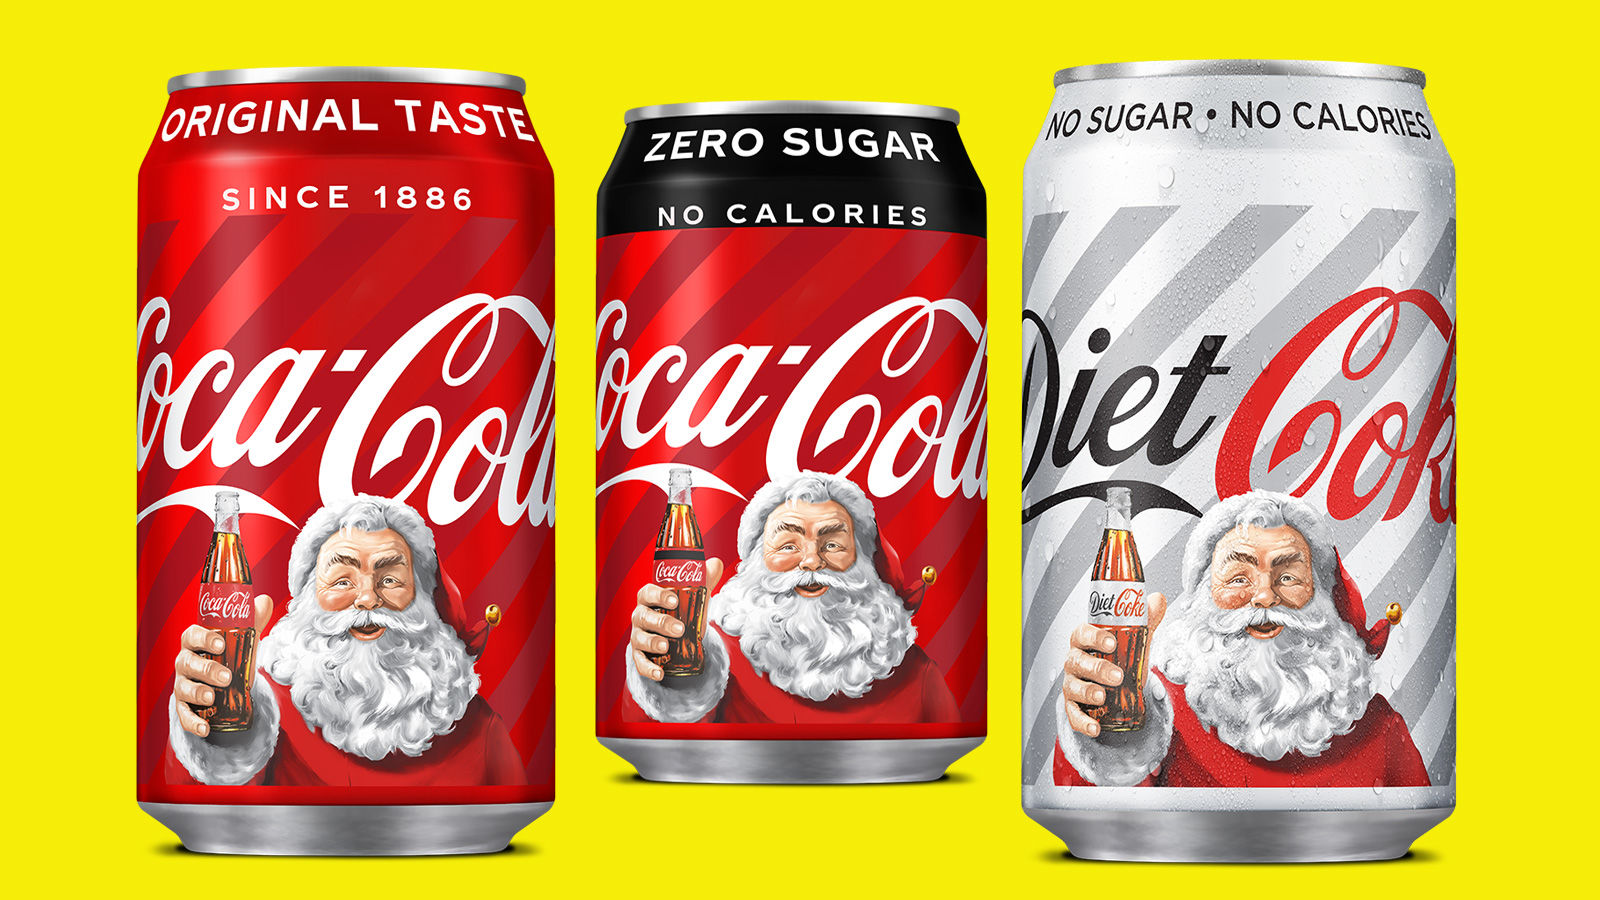 Coca Cola Christmas Commercial 2019 Coca Cola's Christmas campaign rolls out with new advert and a